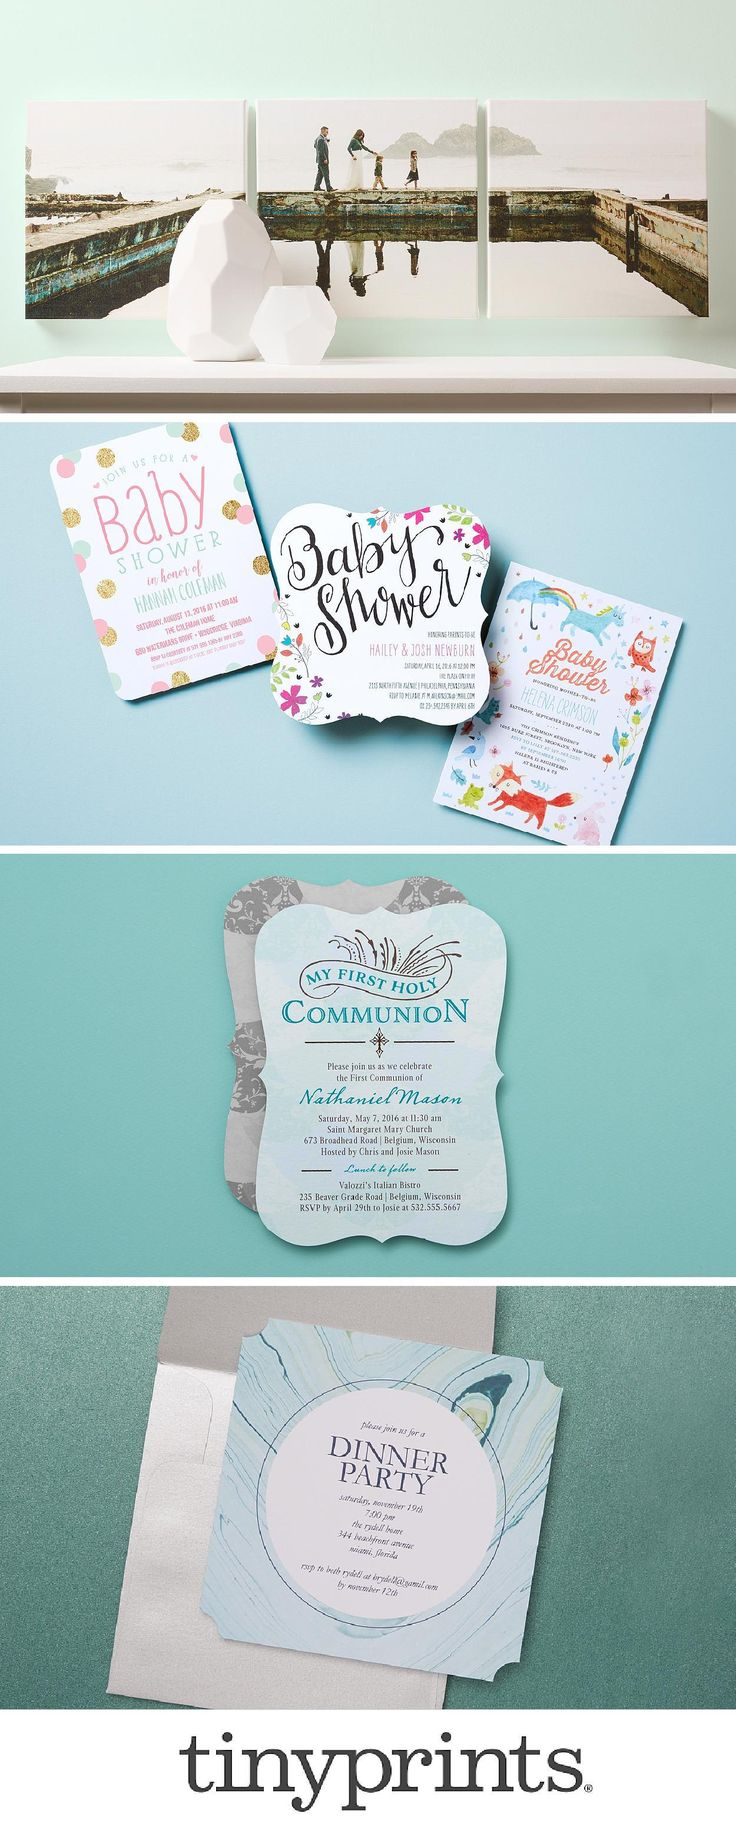 477 best Baby Showers images on Pinterest | Baby shower invitations ...